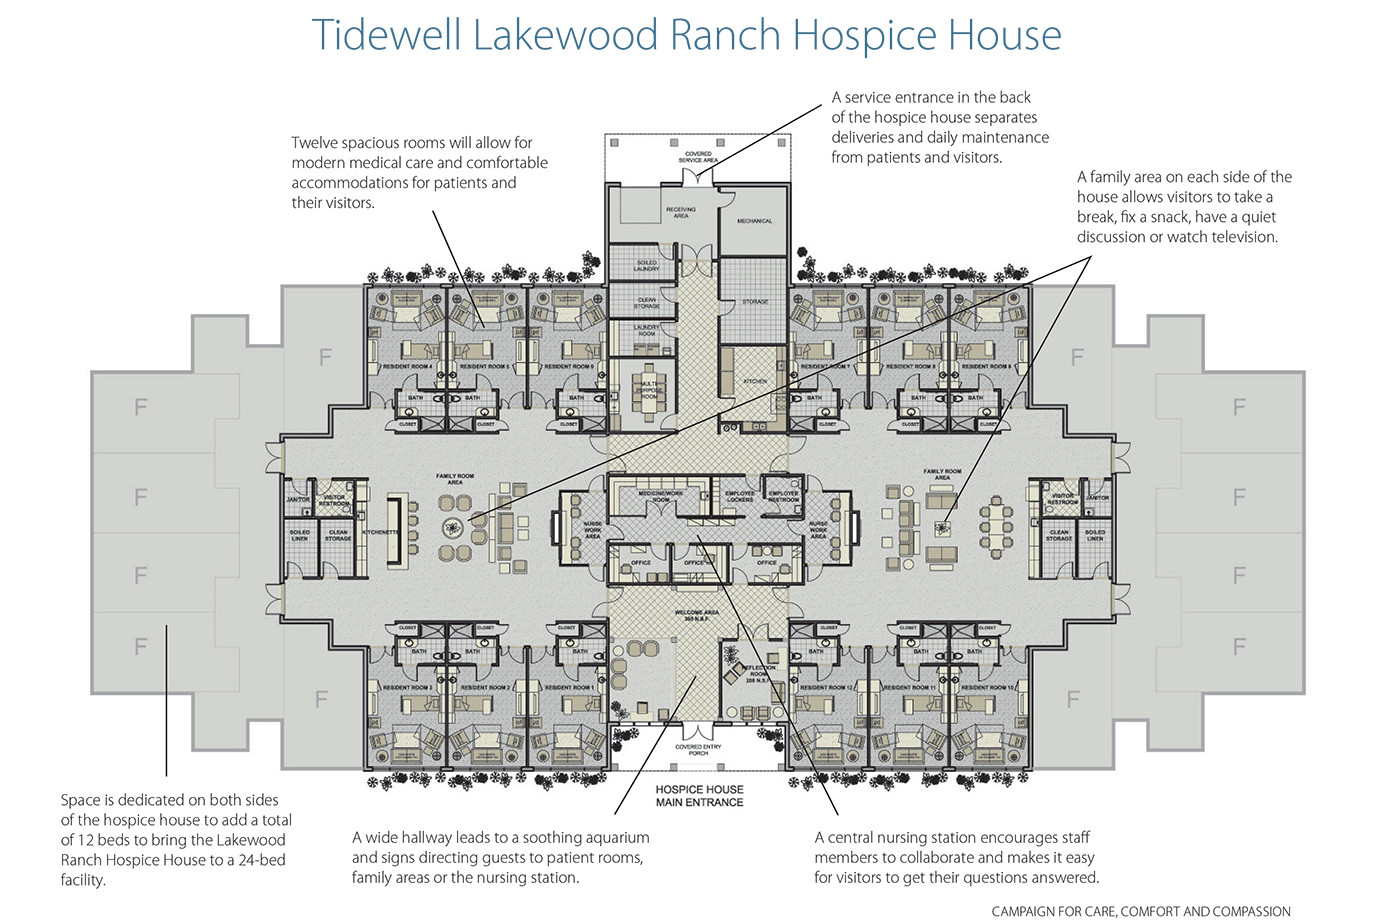 Tidewell Hospice House Lakewood Ranch Campaign Care